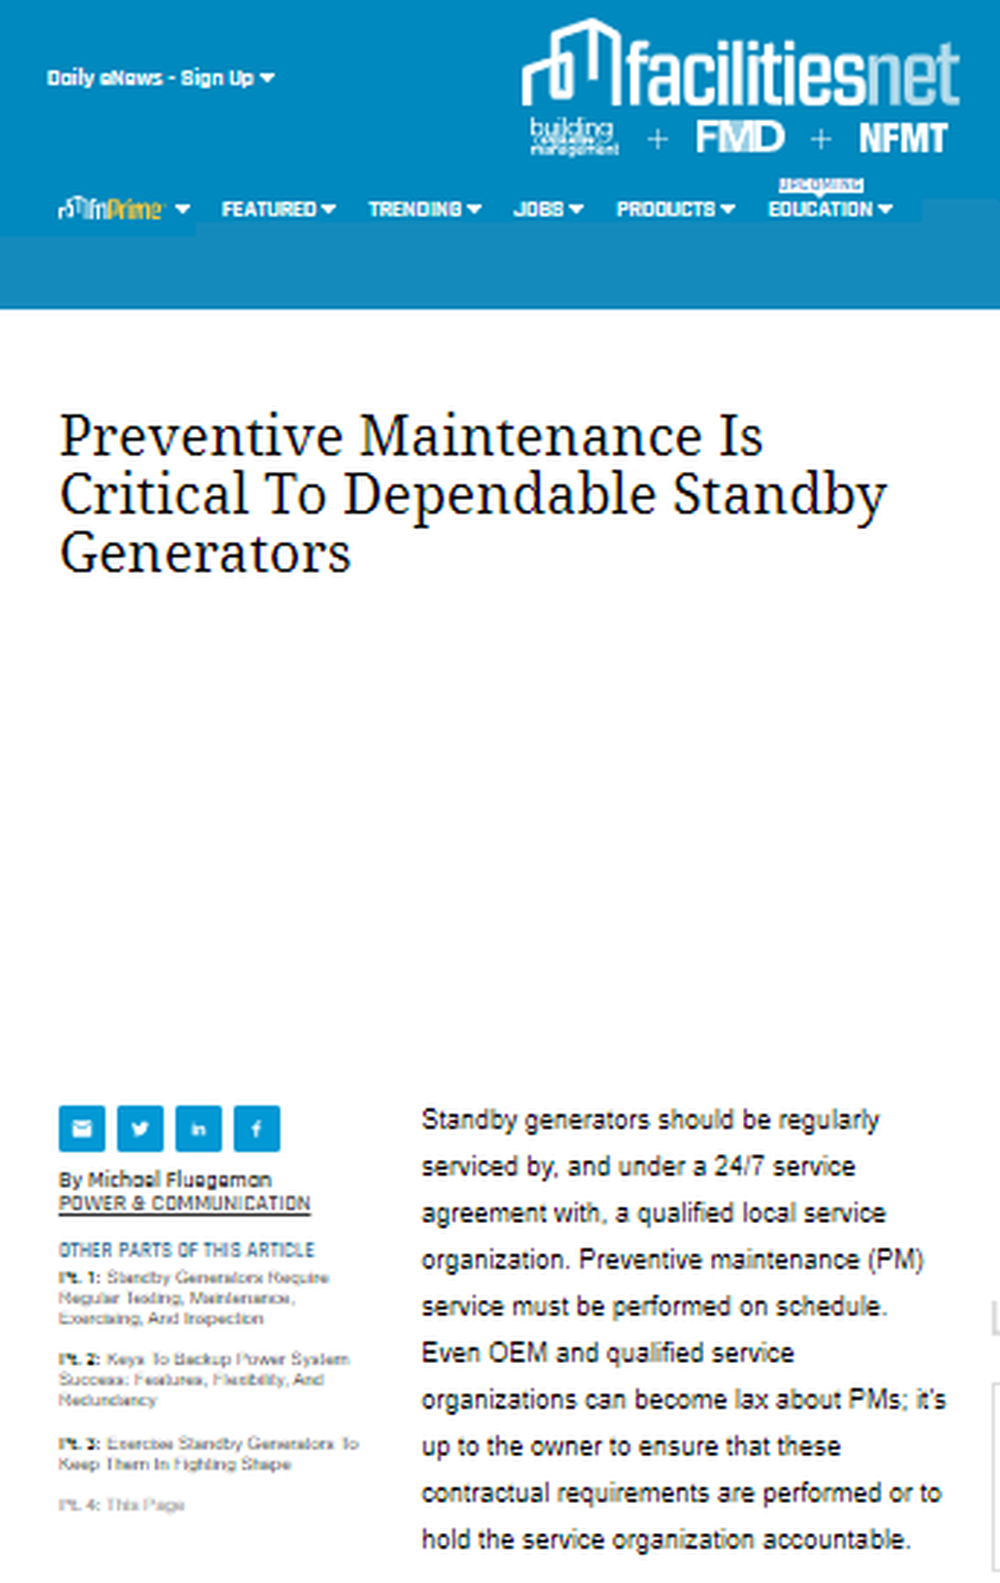 Preventive-Maintenance-Is-Critical-To-Dependable-Standby-Generators-Facilities-Management-Insights.png